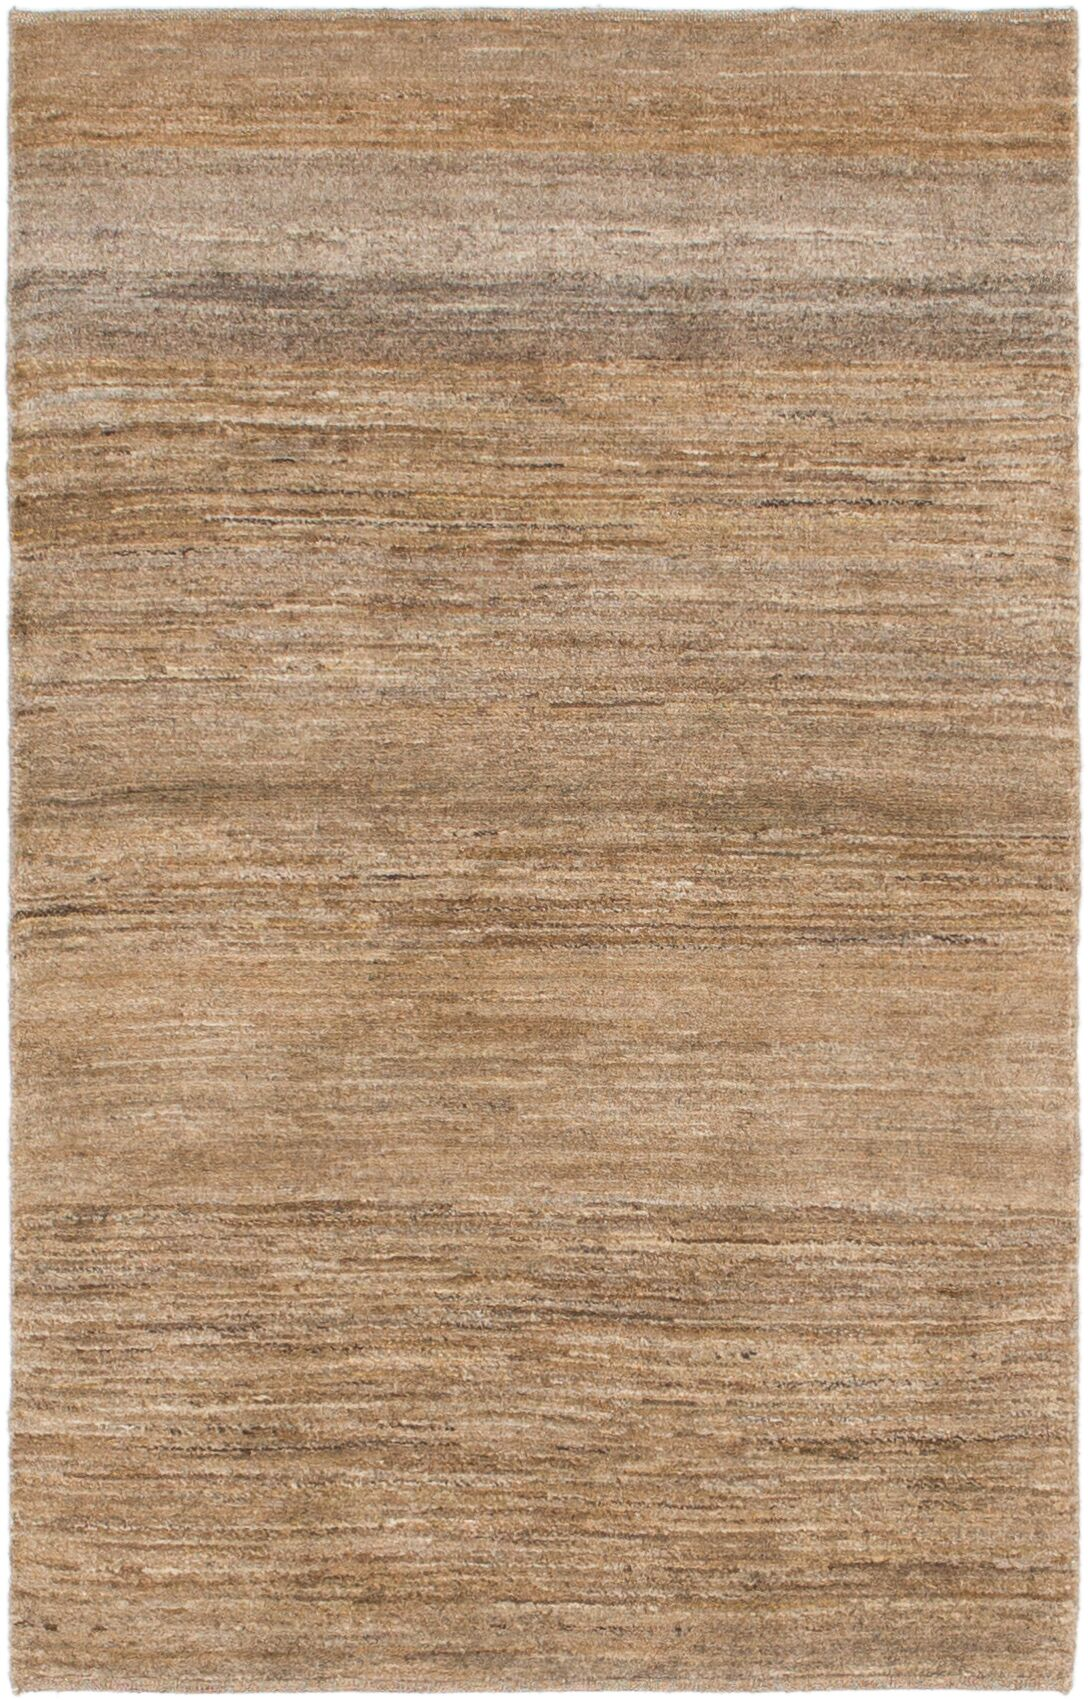 One-of-a-Kind Didcot Hand-Knotted 3' x 5' Wool Light Brown Area Rug